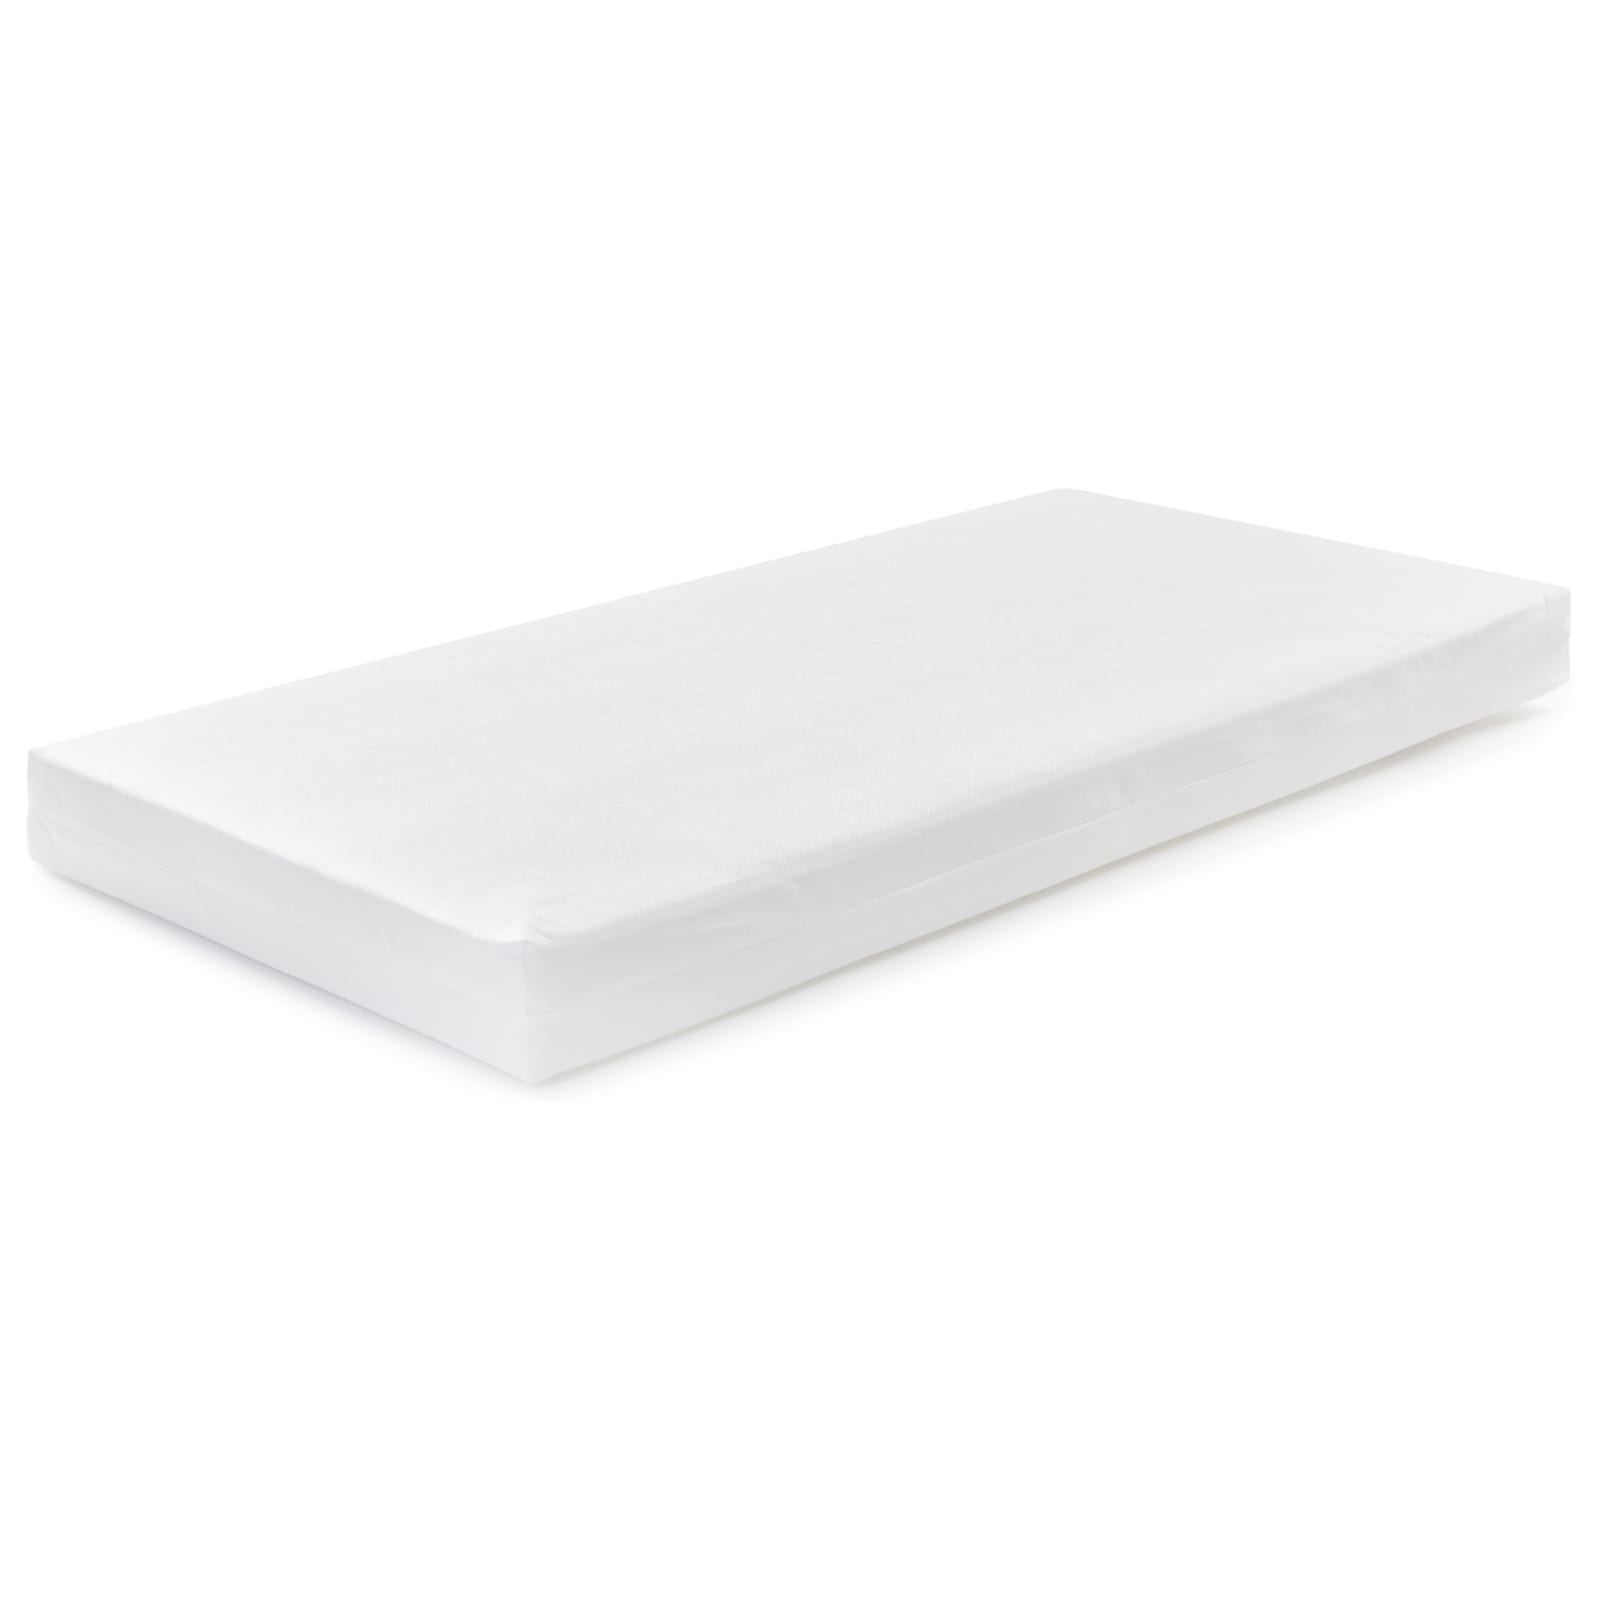 Eco Pocket Mattress – Cot – 60x120x10cm product image